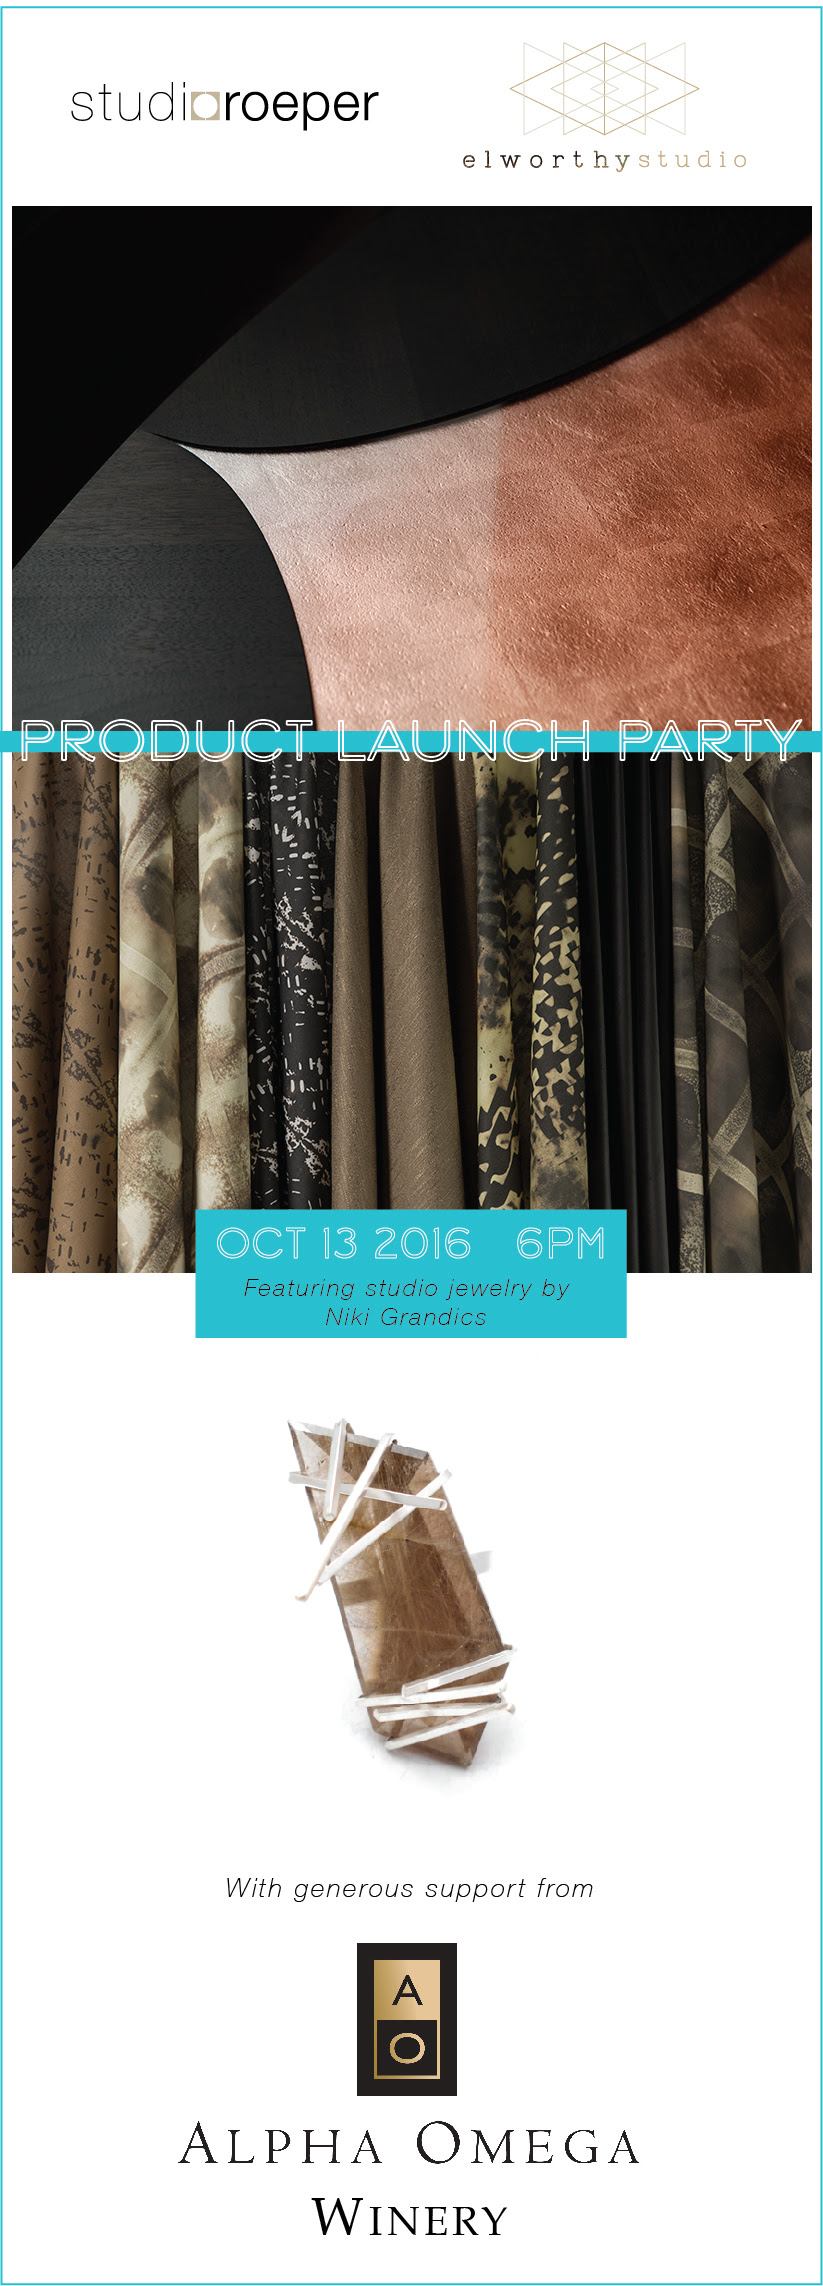 Join us October 13th from 6-10pm for a trunk show featuring new designs at Studio Roeper in San Francisco! See you there!